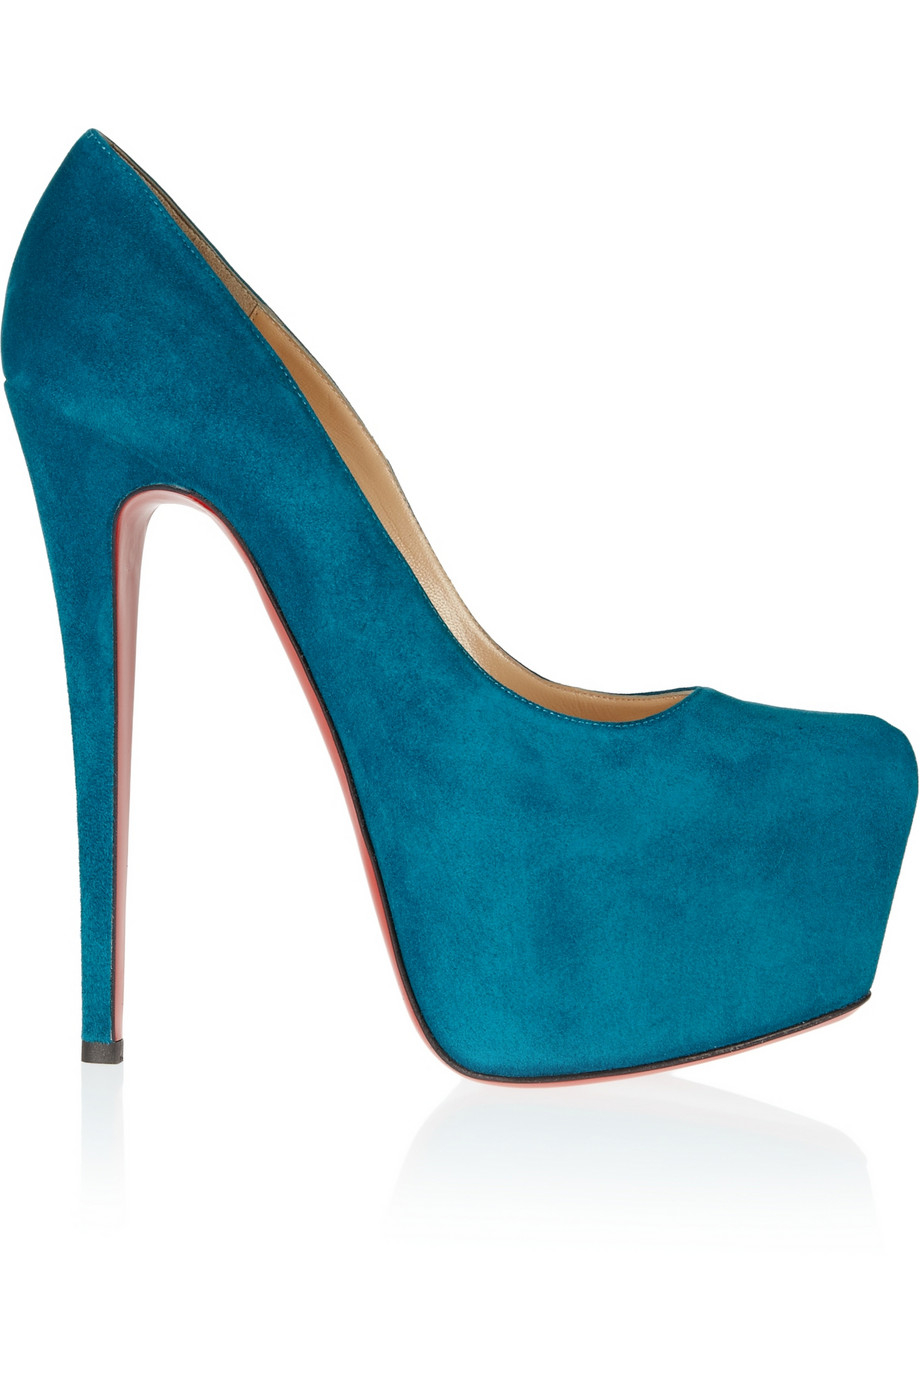 Blue Suede Shoes Wedges Peacock